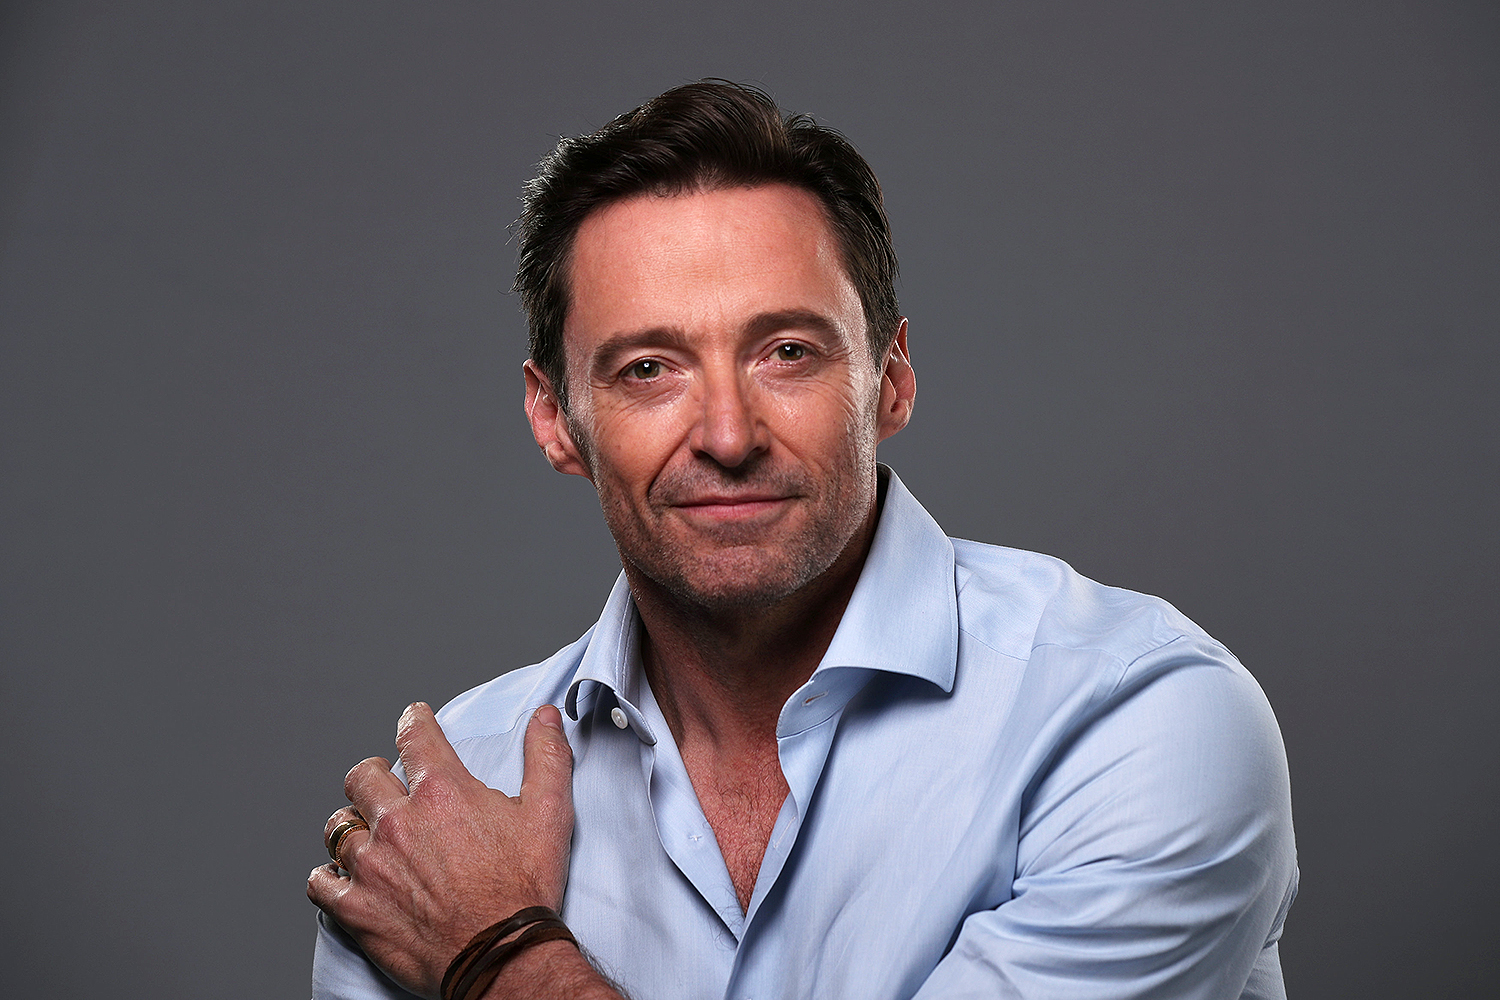 Photo of Hugh Jackman prepara turnê mundial com show inédito